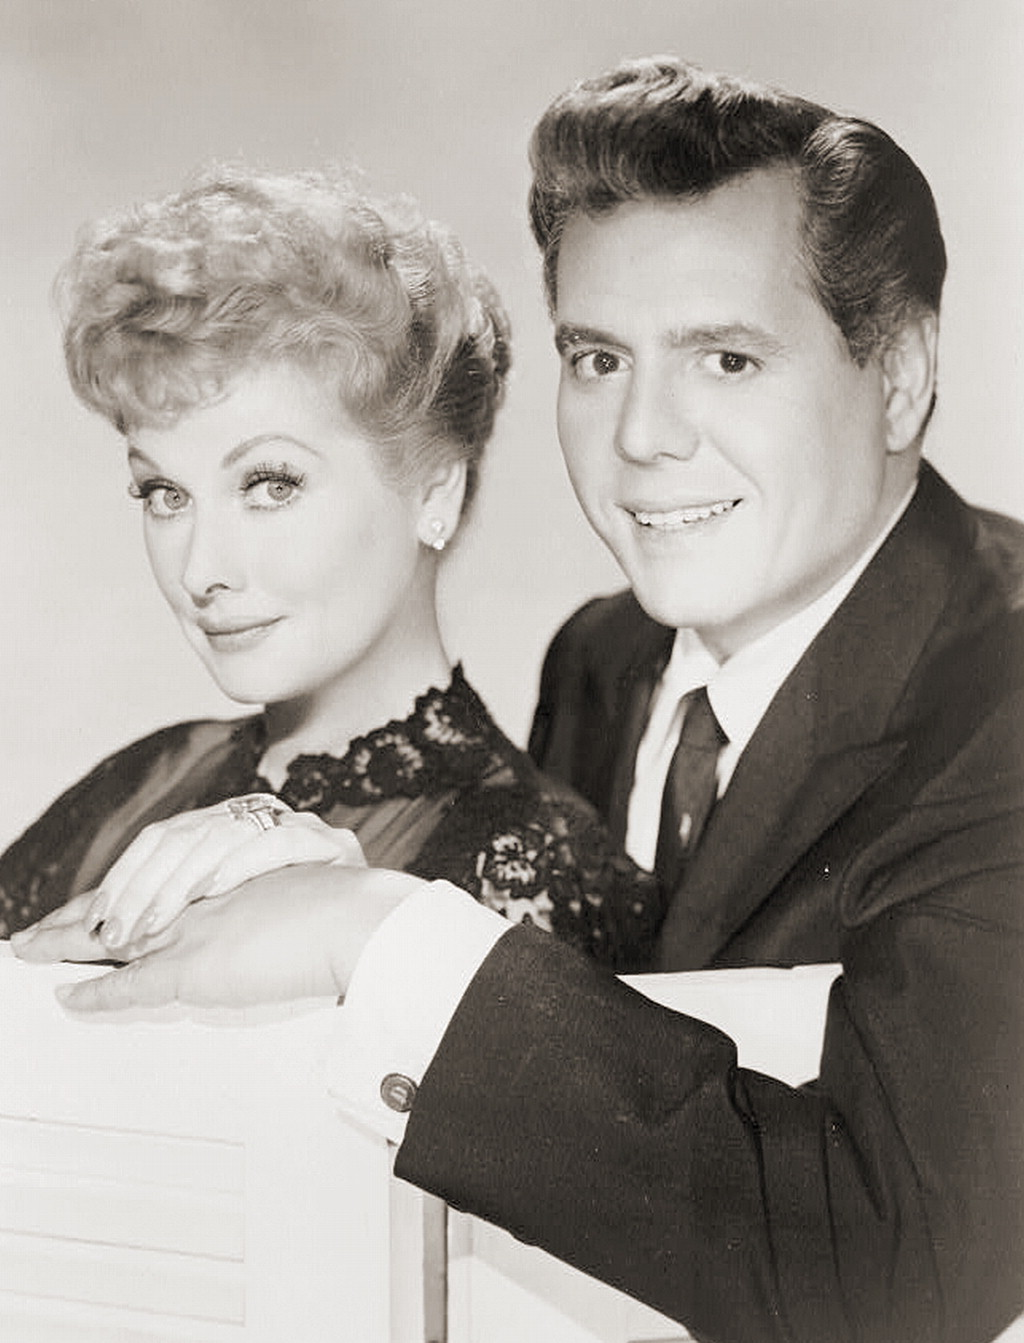 desi arnaz letter to lucille balldesi arnaz similau, desi arnaz pronunciation, desi arnaz and edith mack hirsch, desi arnaz cuban pete, desi arnaz jr, desi arnaz a book pdf, desi arnaz tumblr, desi arnaz letter to lucille ball, desi arnaz the book, desi arnaz, desi arnaz junior, desi arnaz biography, desi arnaz wiki, desi arnaz second wife, desi arnaz orchestra, desi arnaz net worth, desi arnaz last words, desi arnaz jr and patty duke, desi arnaz jr daughter julia, desi arnaz funeral